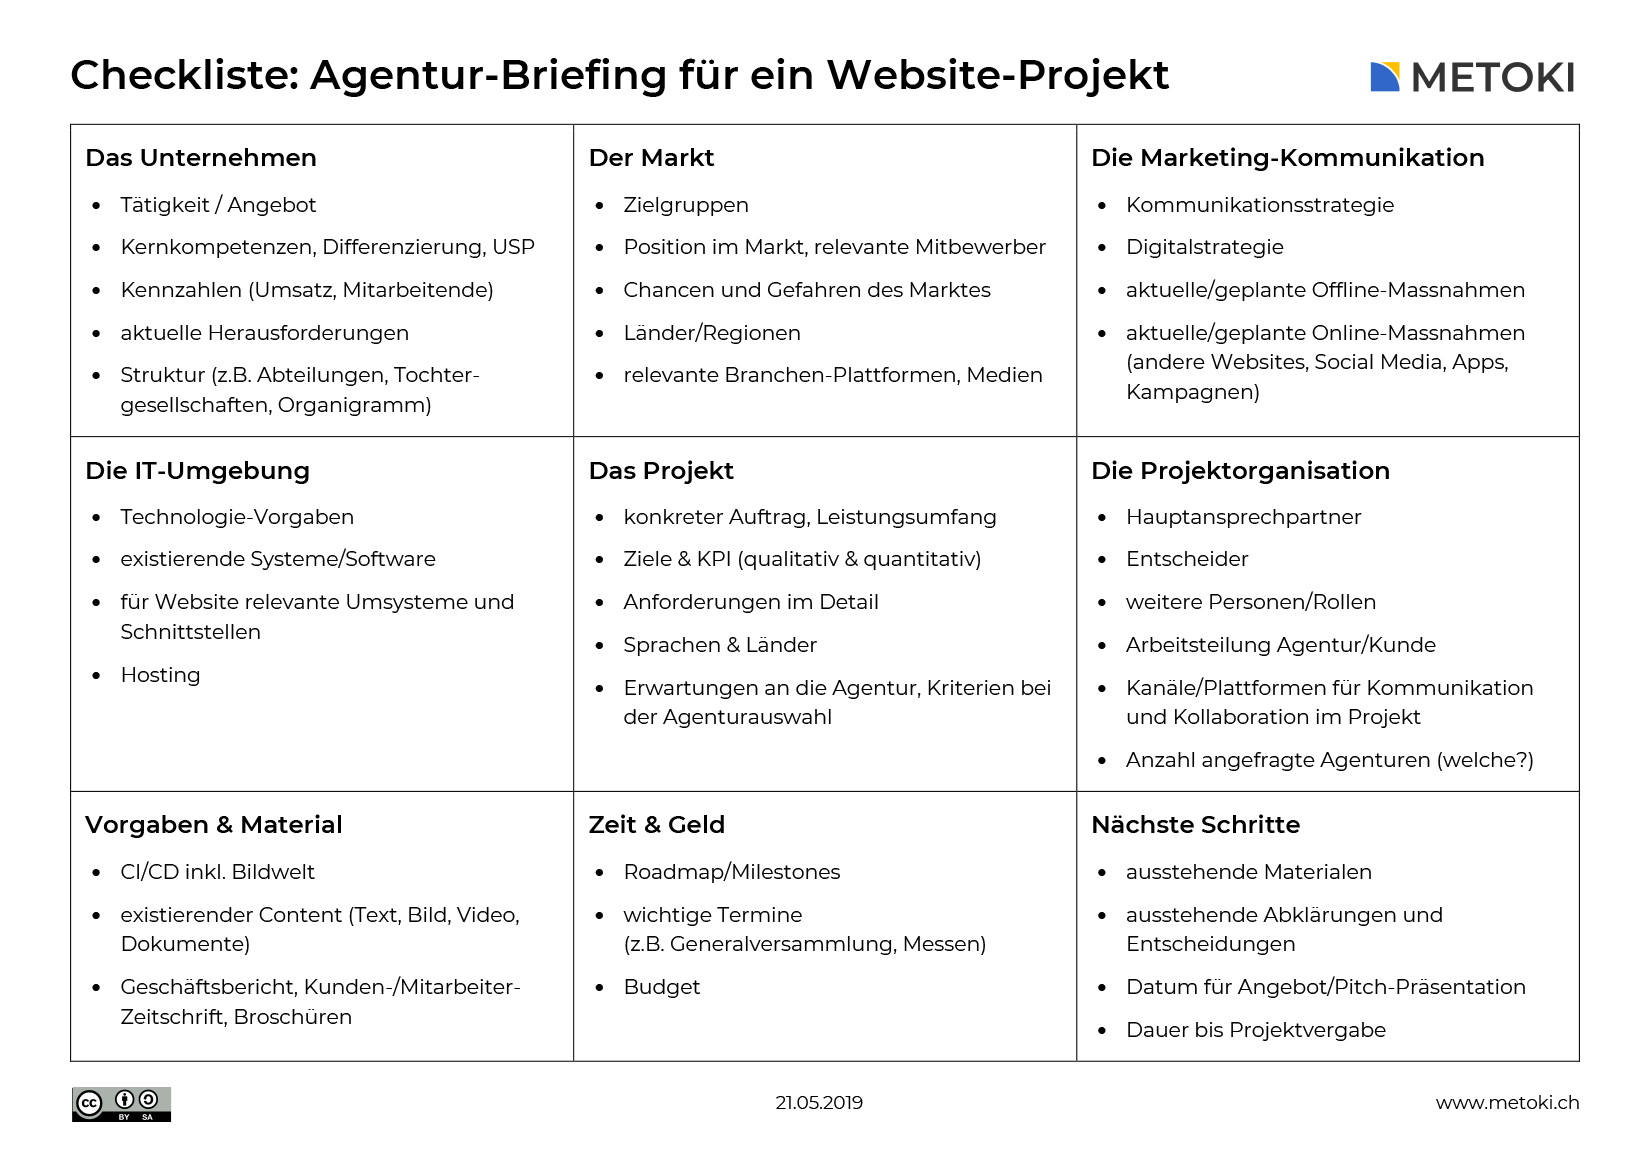 Checkliste: Agentur-Briefing für ein Website-Projekt